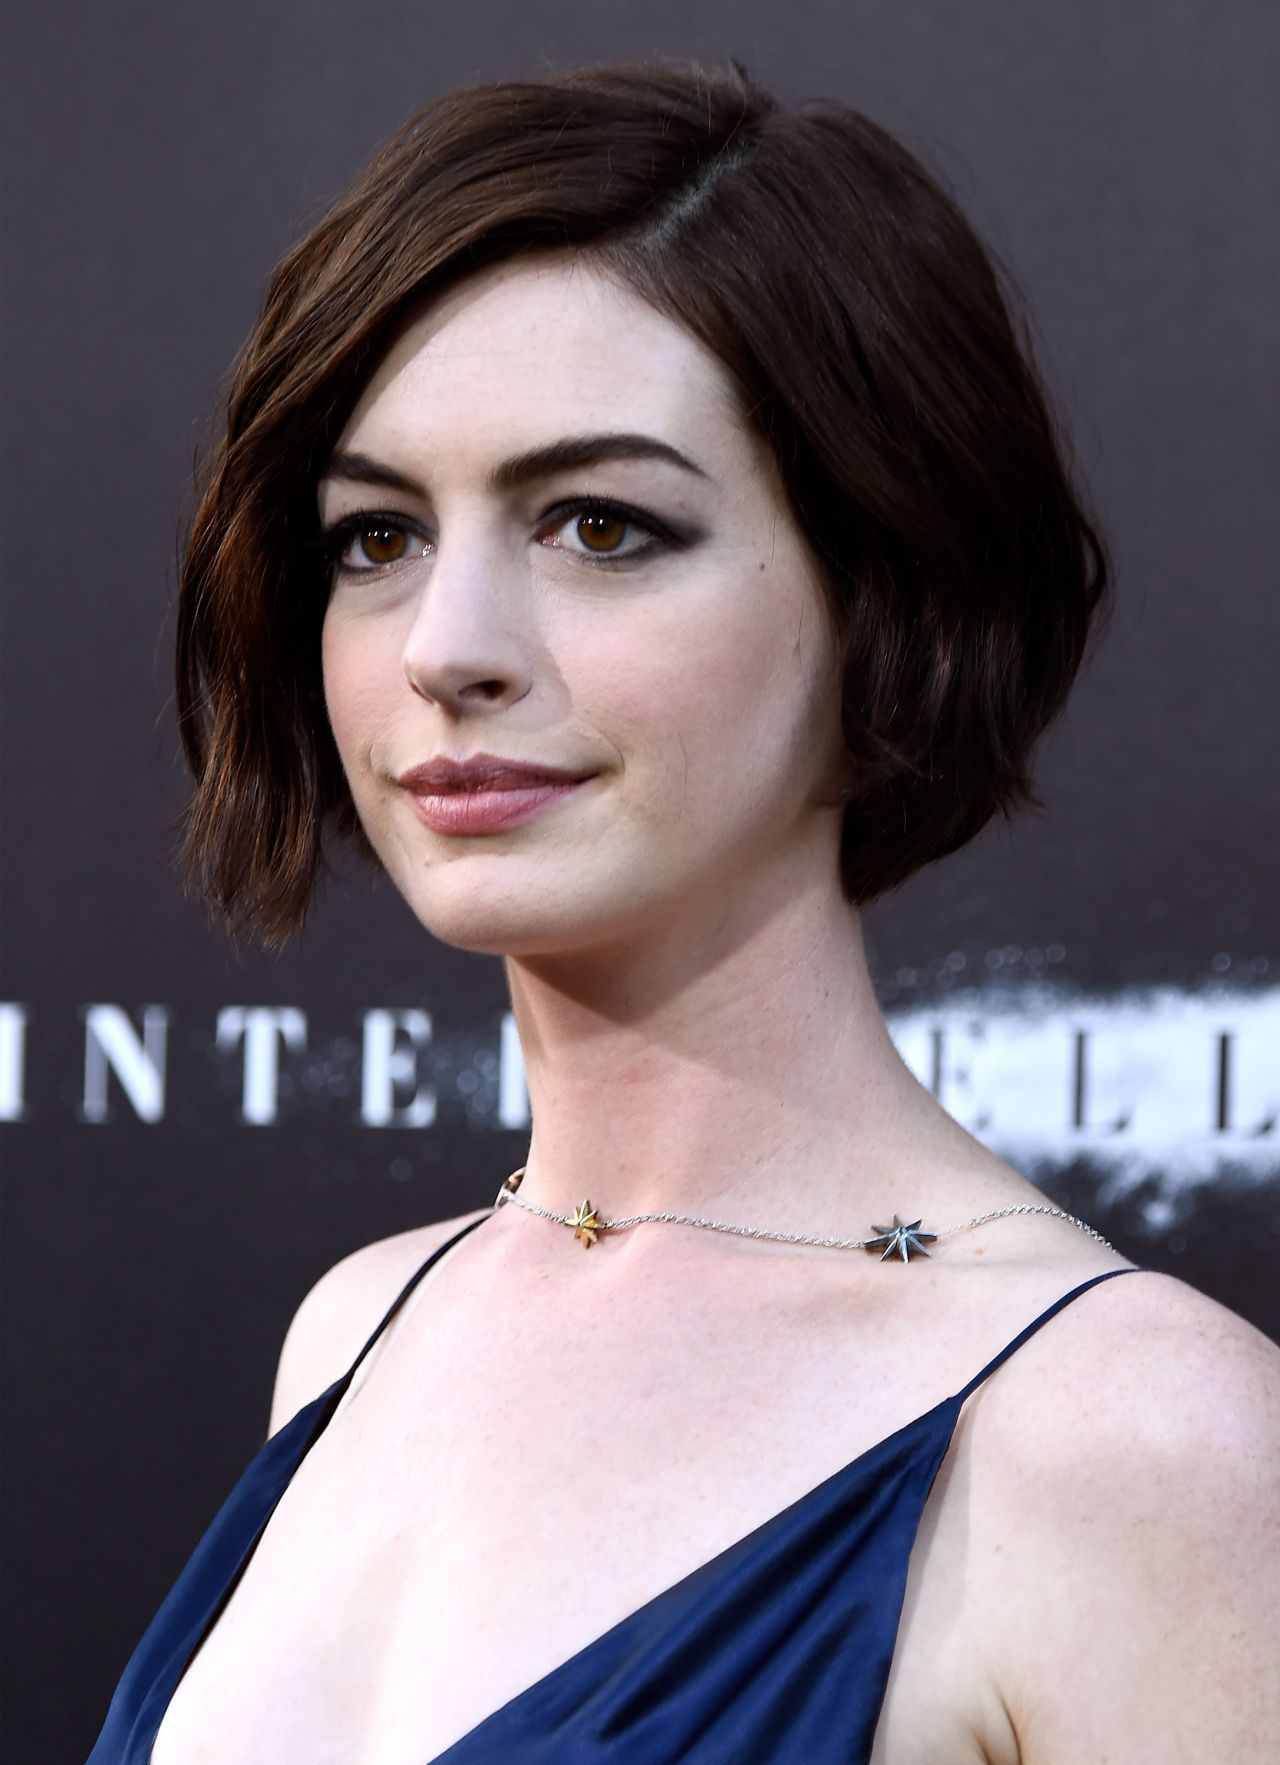 Anne Hathaway Interstellar Premiere In Hollywood